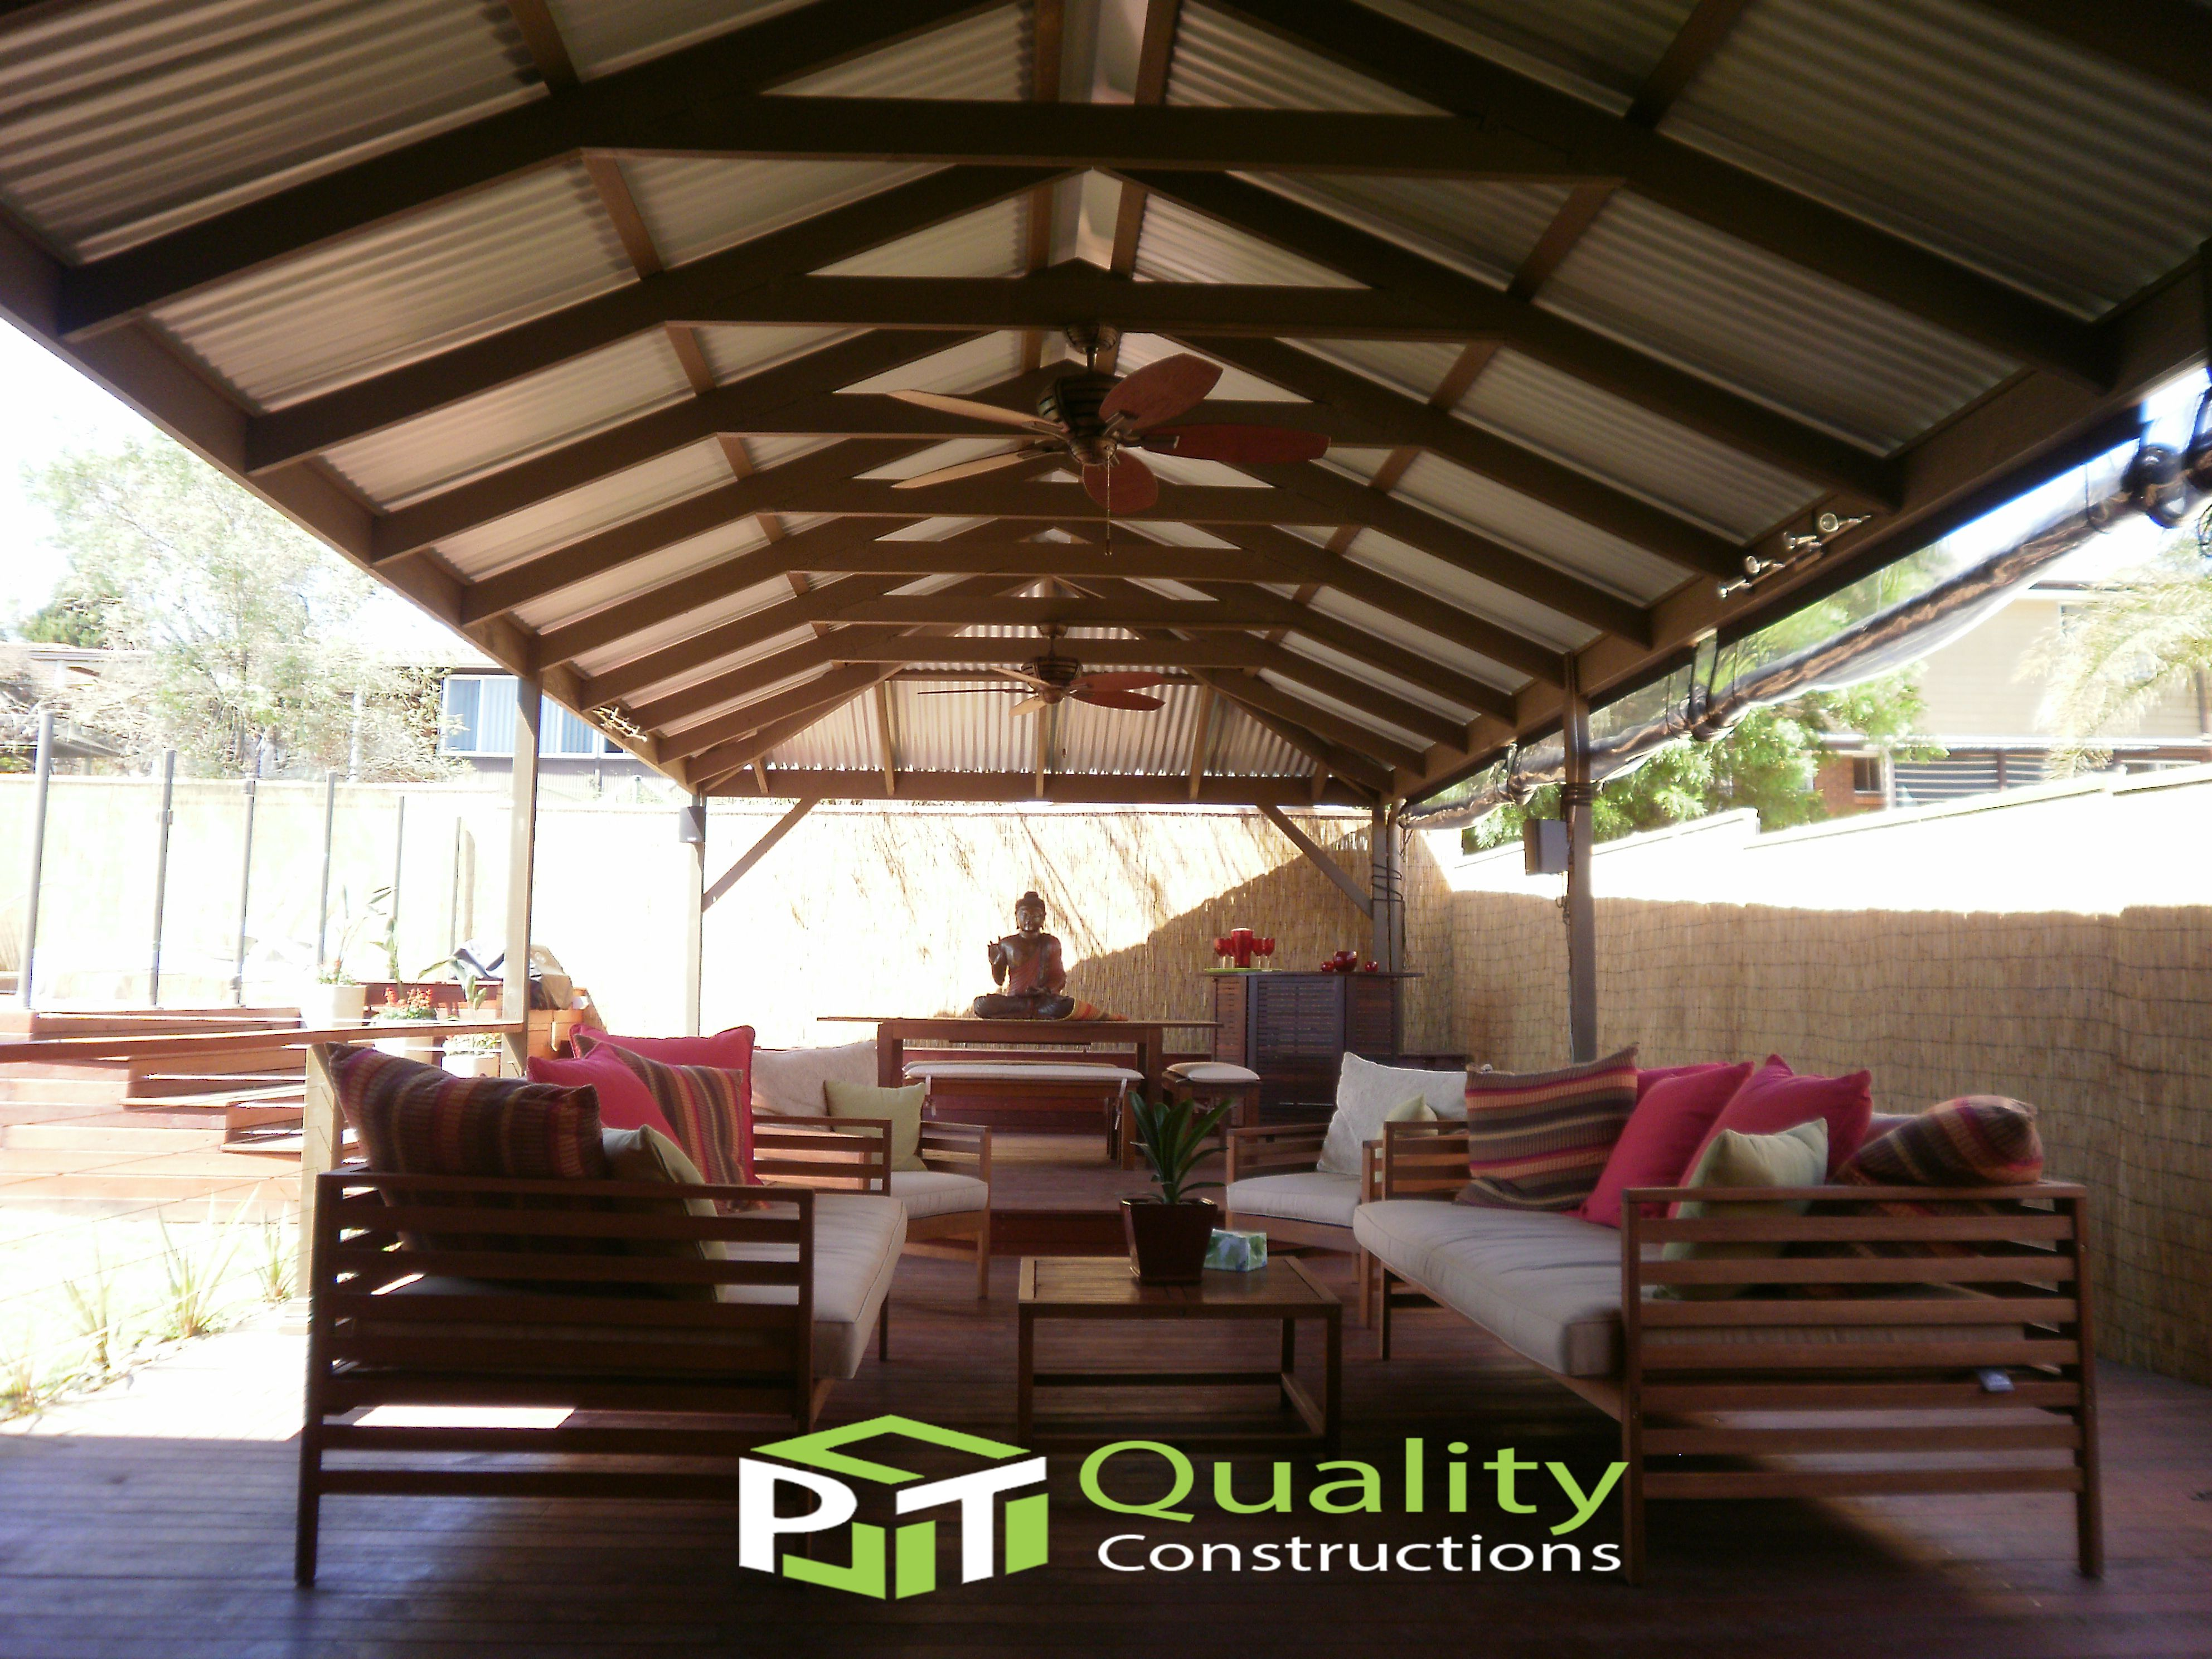 Gable timber framed pergola with corrugated roofing